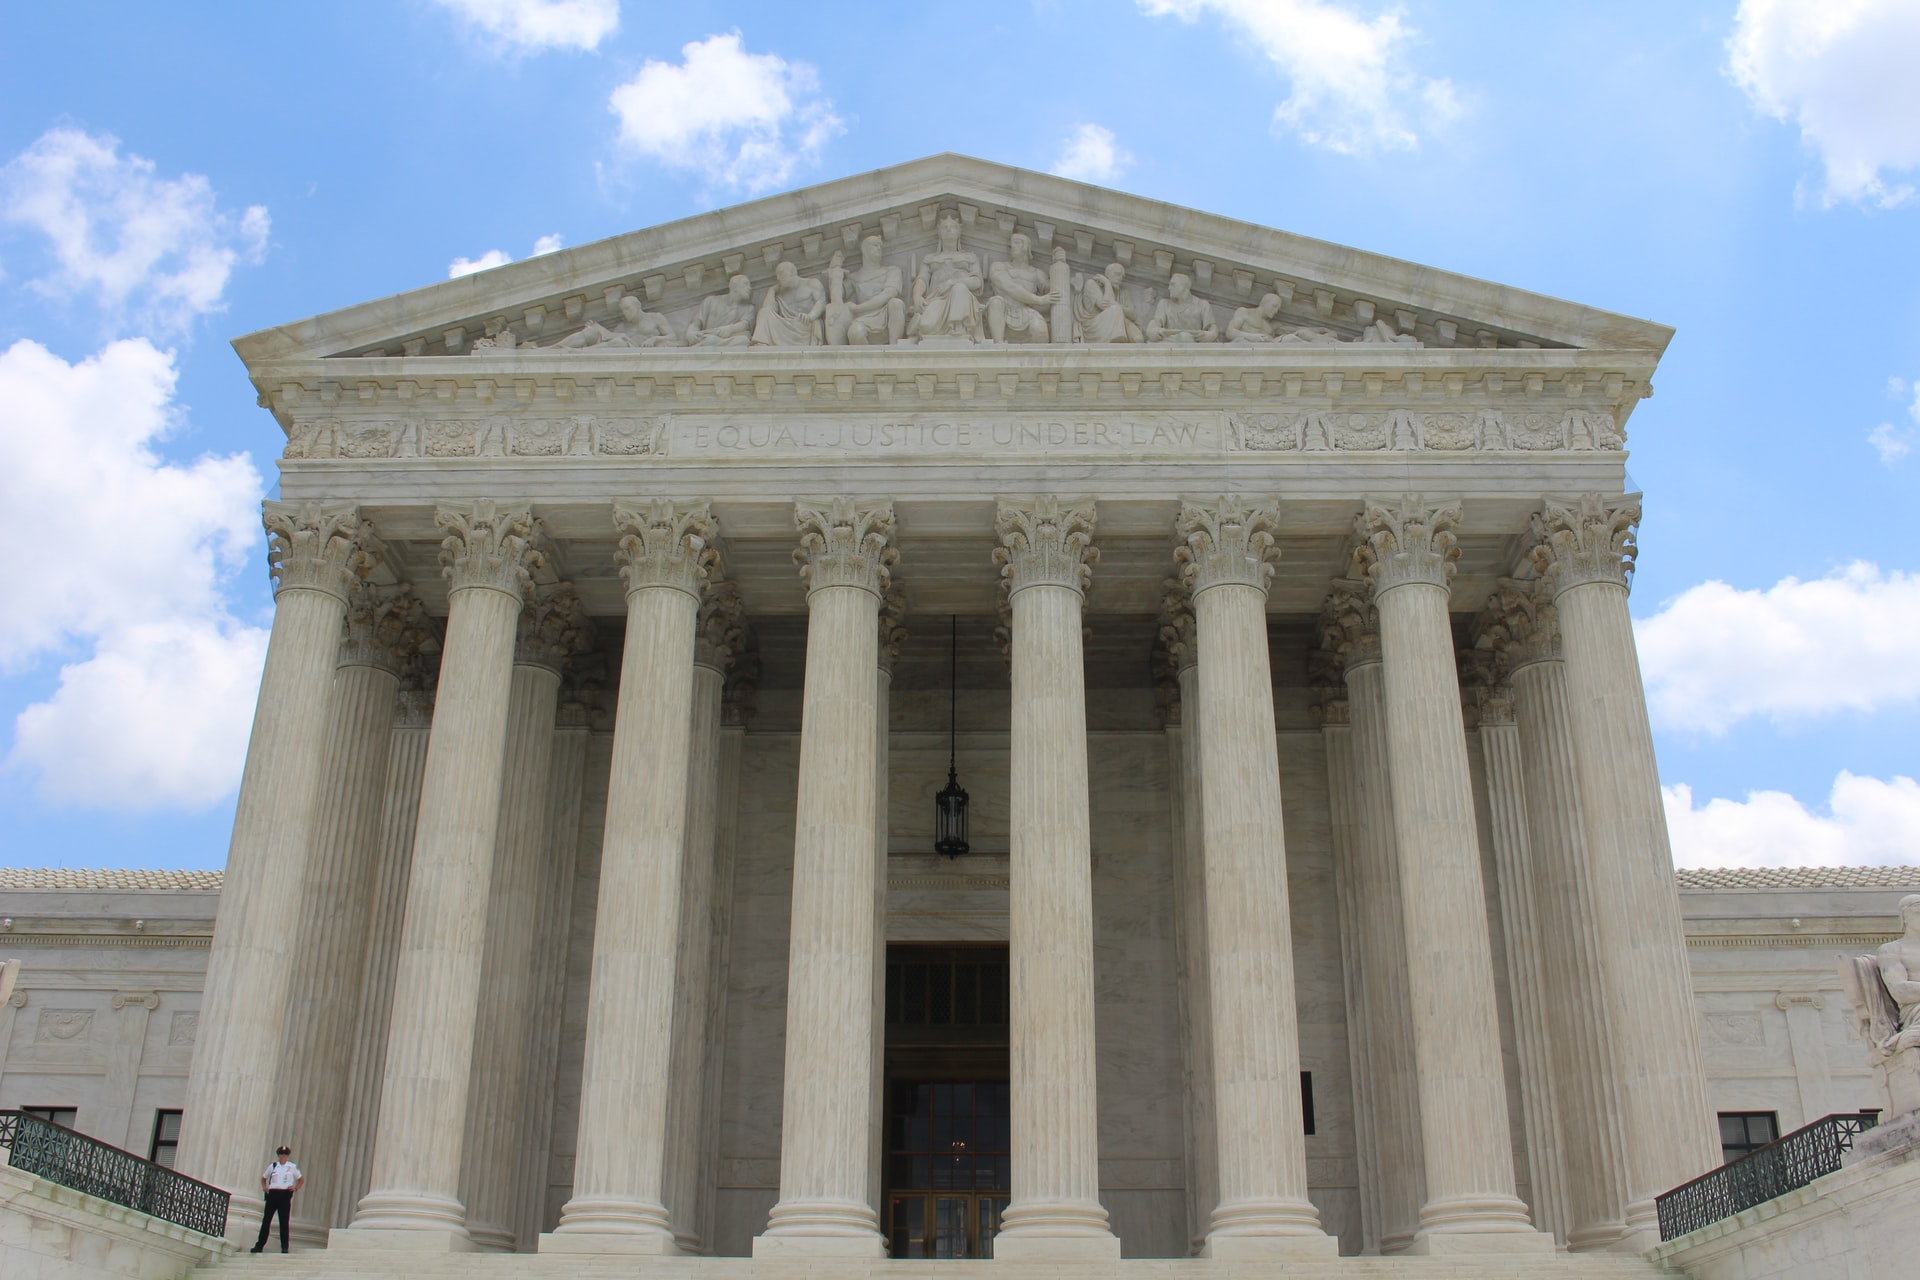 Federalism, State Constitutionalism, and School Choice in the Supreme Court